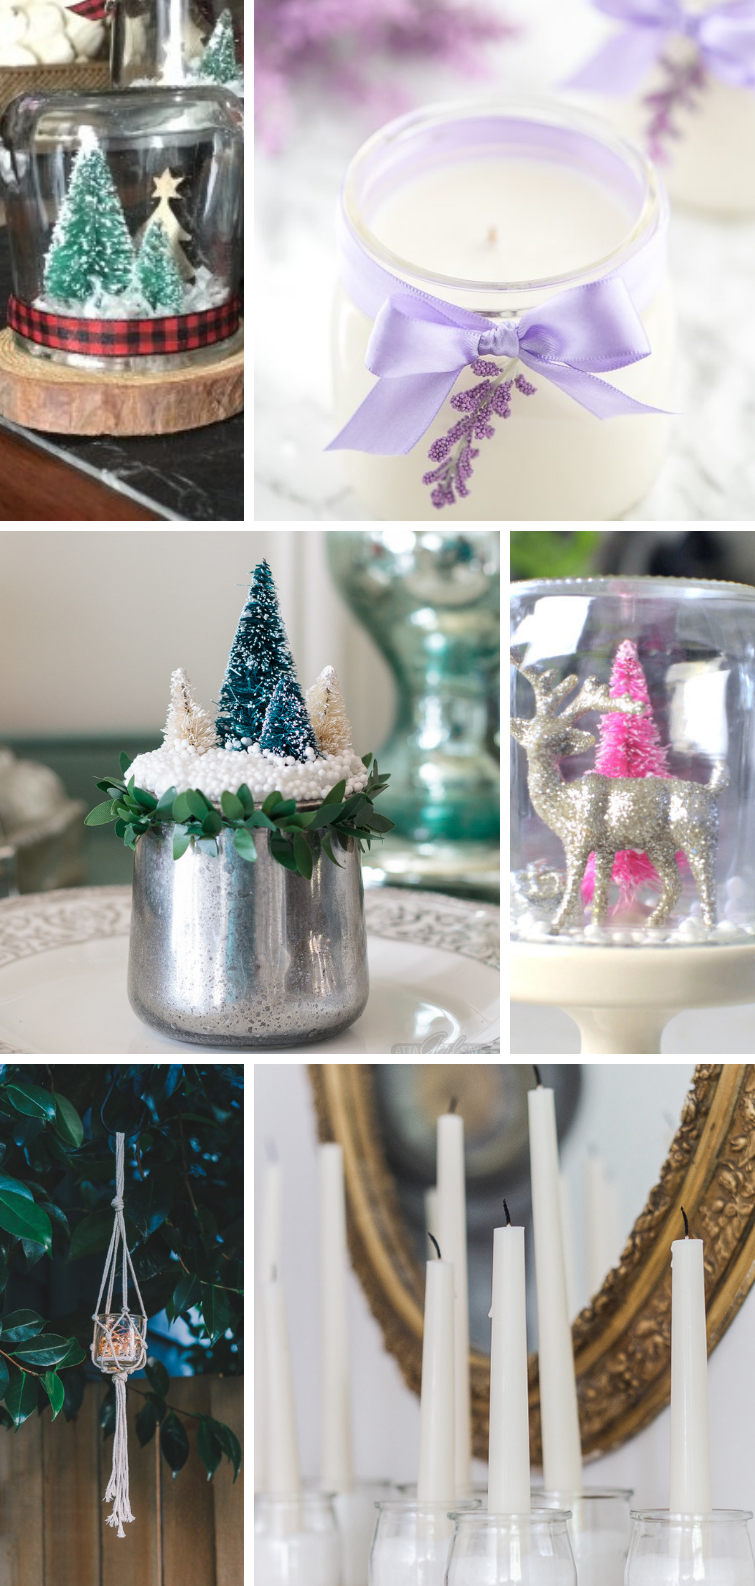 collage featuring crafts made from glass Oui yogurt jars